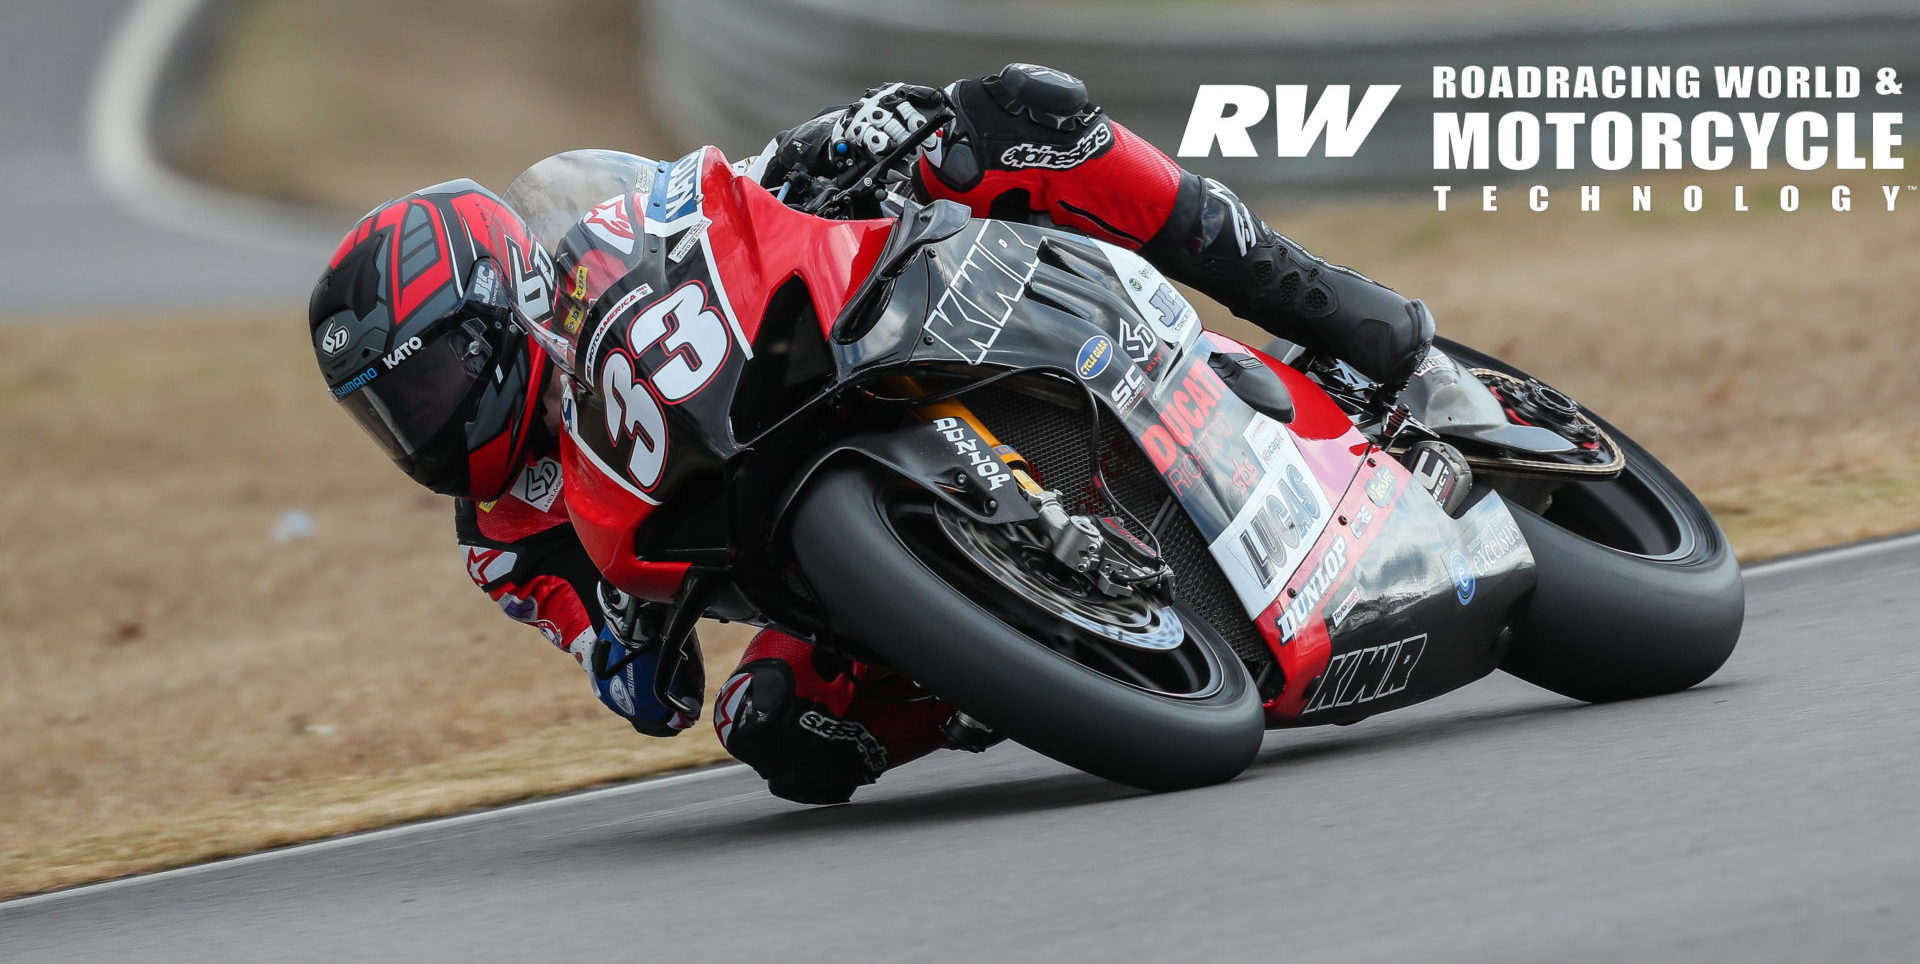 Kyle Wyman (33) at speed during the official MotoAmerica pre-season at Barber Motorsports Park. Photo by Brian J. Nelson.